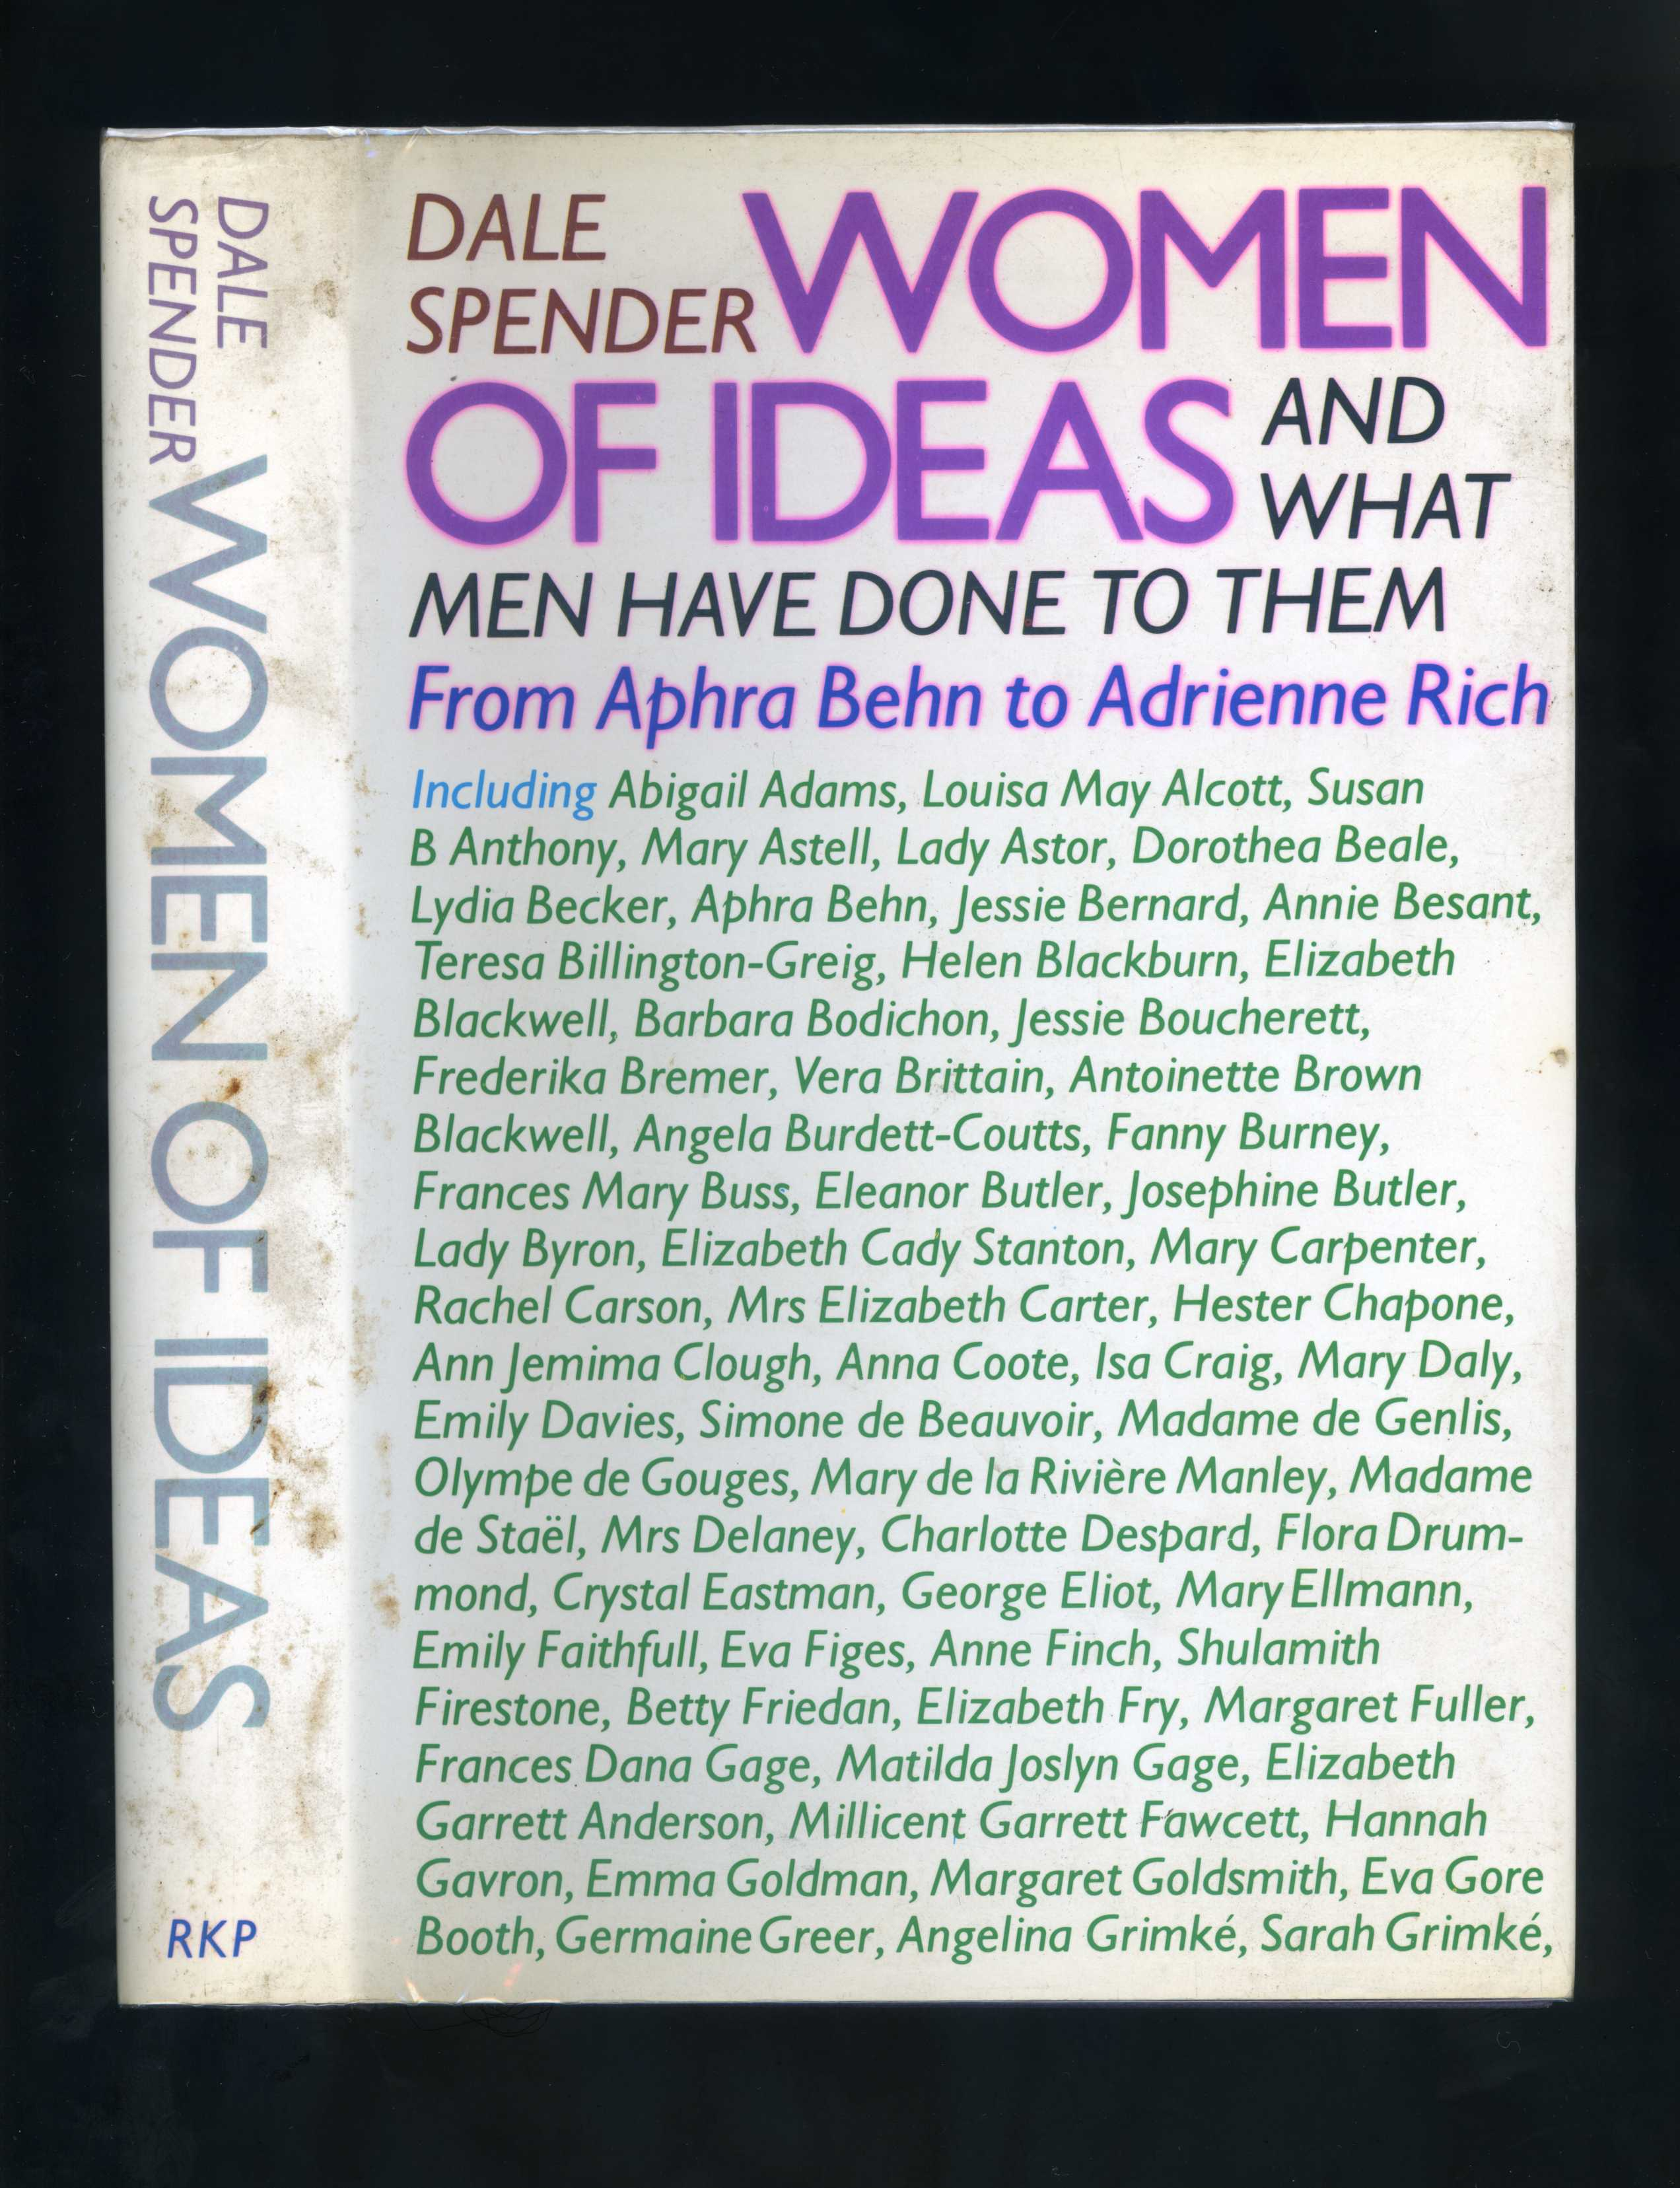 WOMEN OF IDEAS: AND WHAT MEN HAVE DONE TO THEM - From Aphra Behn to Adrienne Rich - Dale Spender